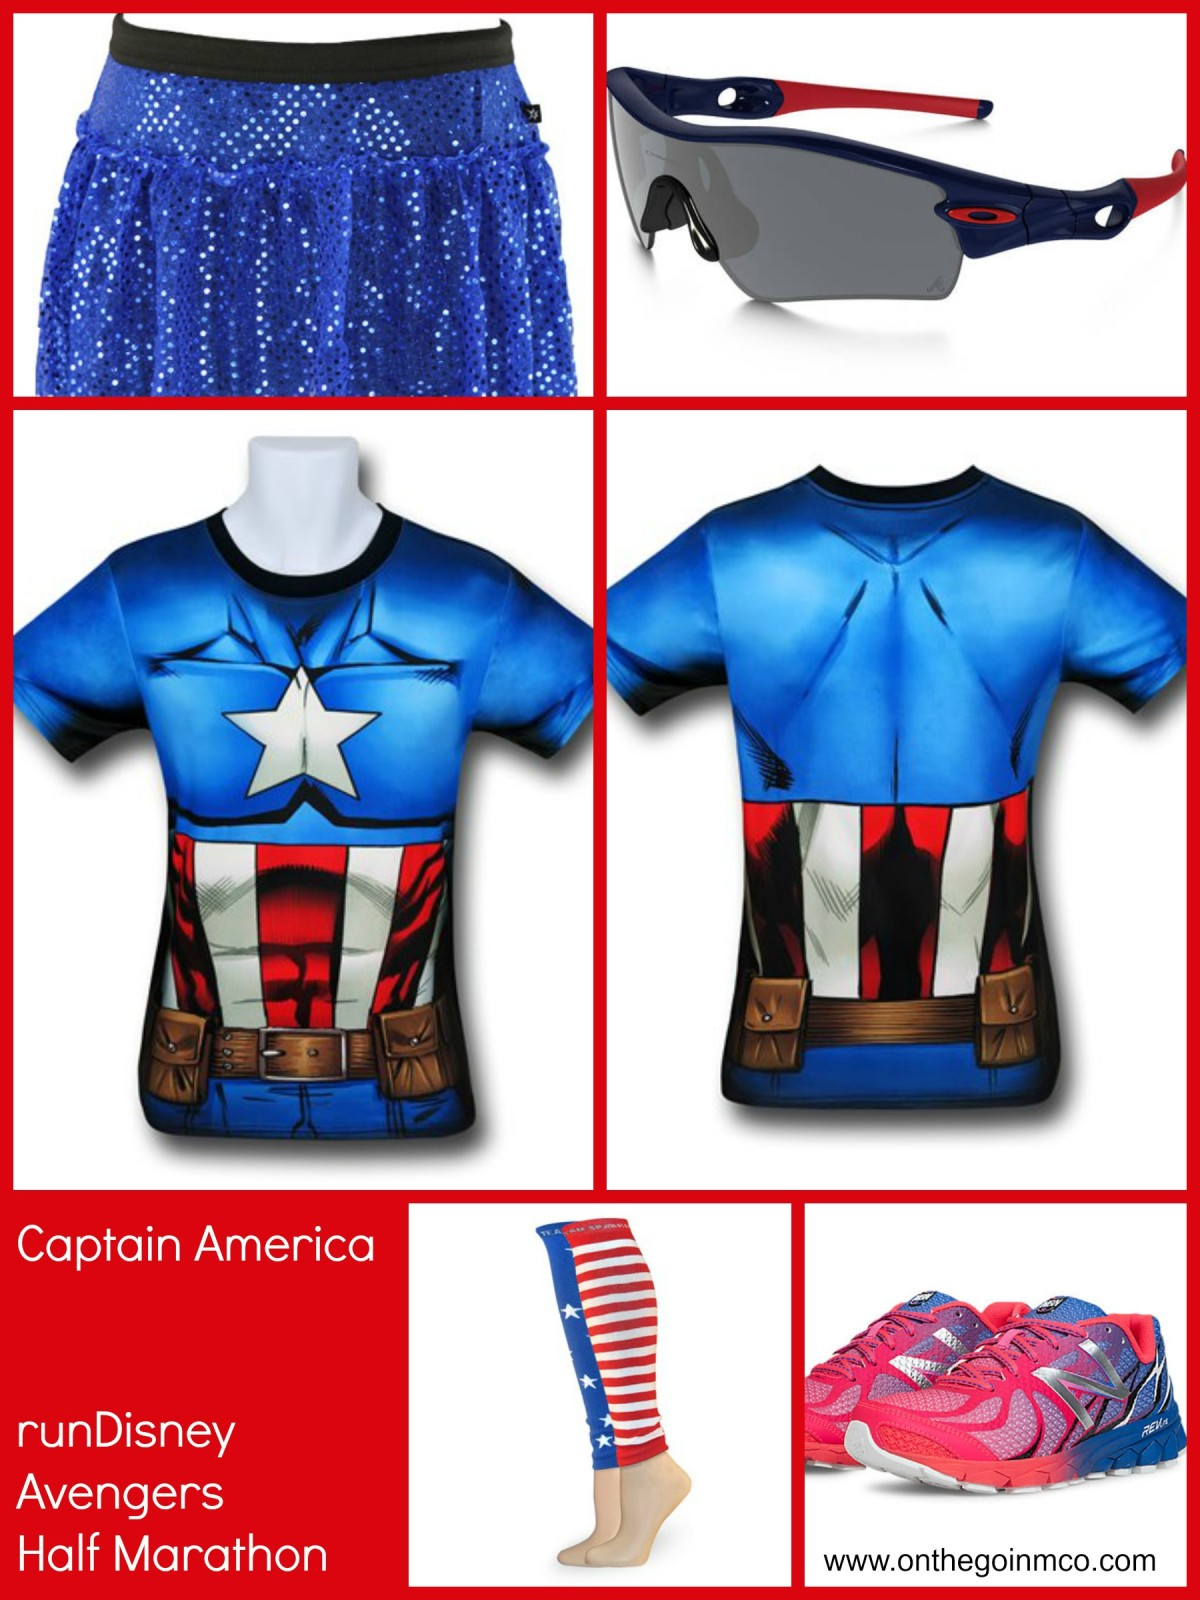 Captain America runDisney Avengers Half Marahton Idea Collage